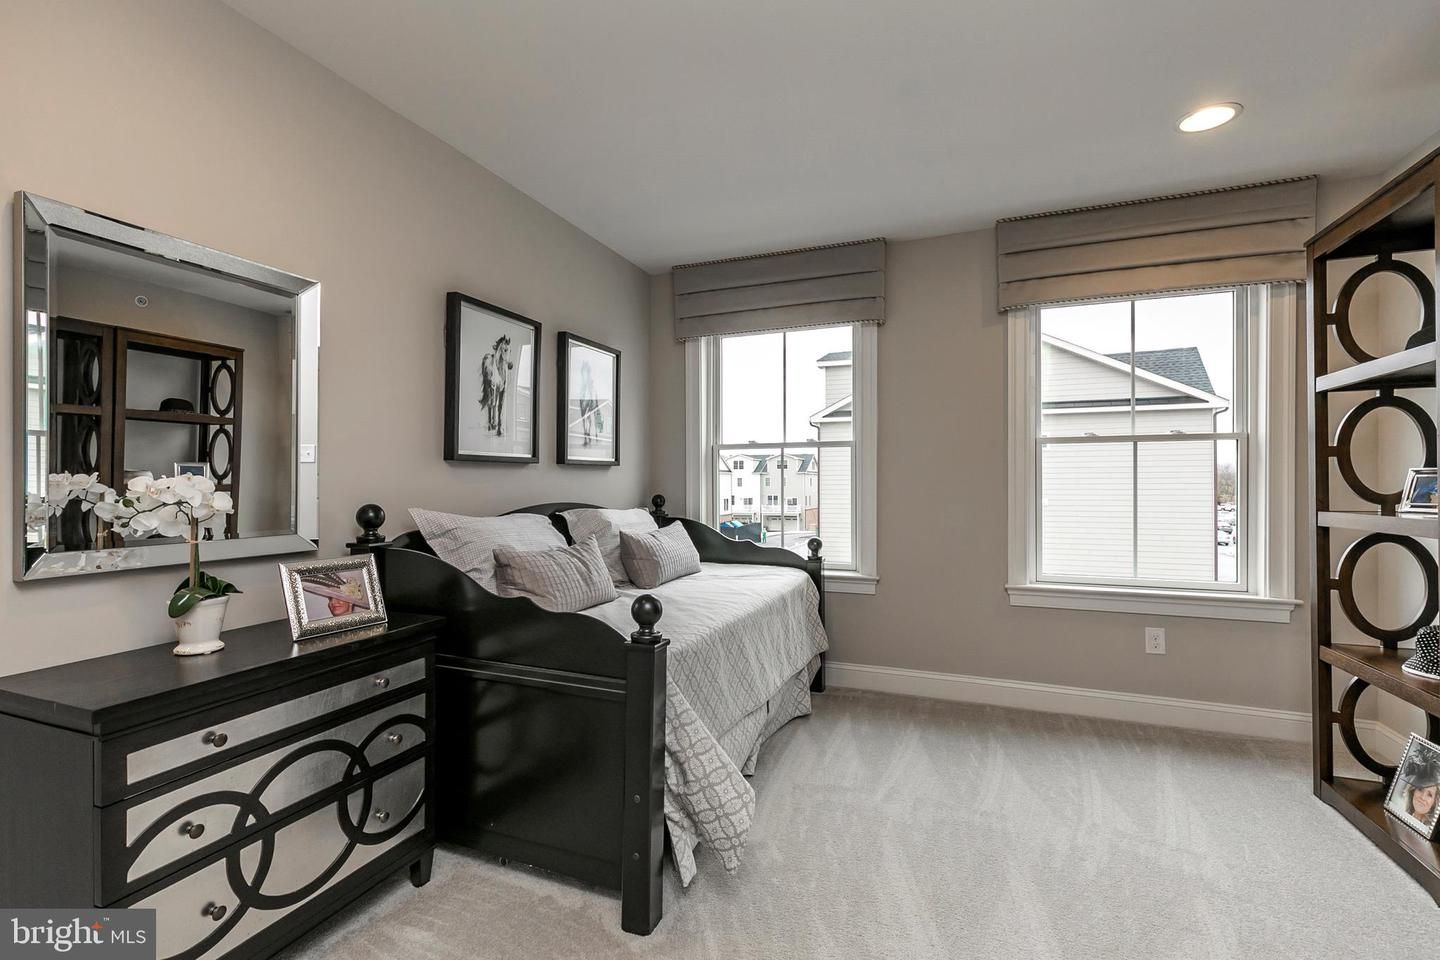 304 Trotters Court Lot 25